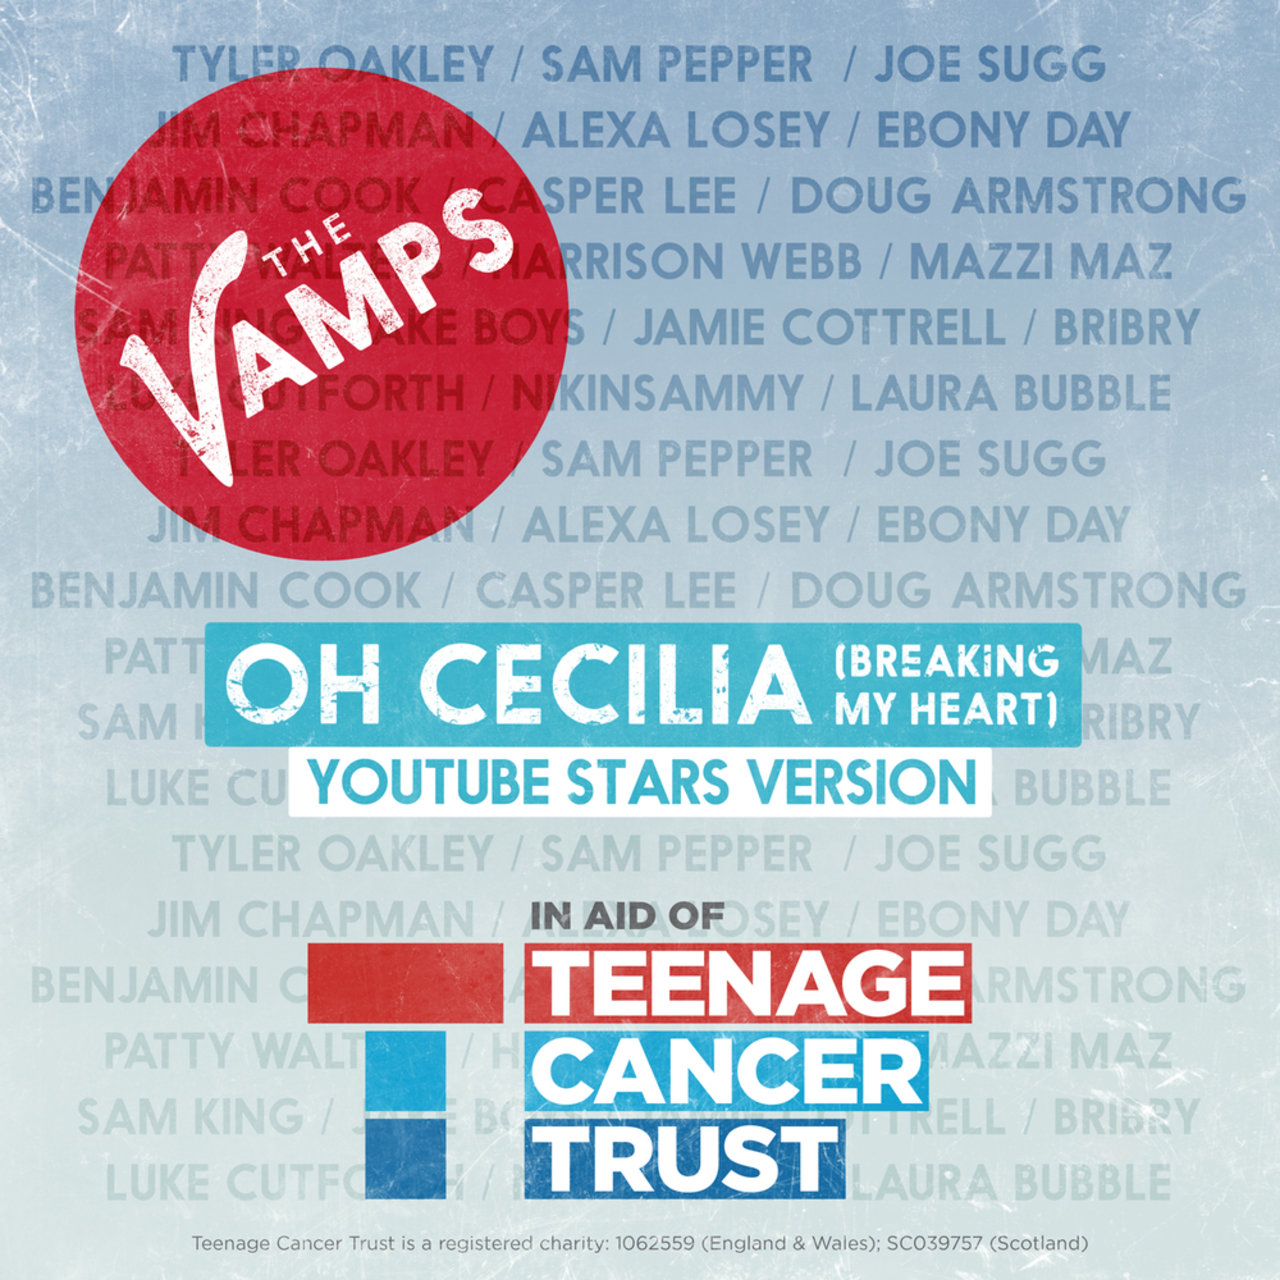 Oh Cecilia (Breaking My Heart) (YouTube Stars Version)